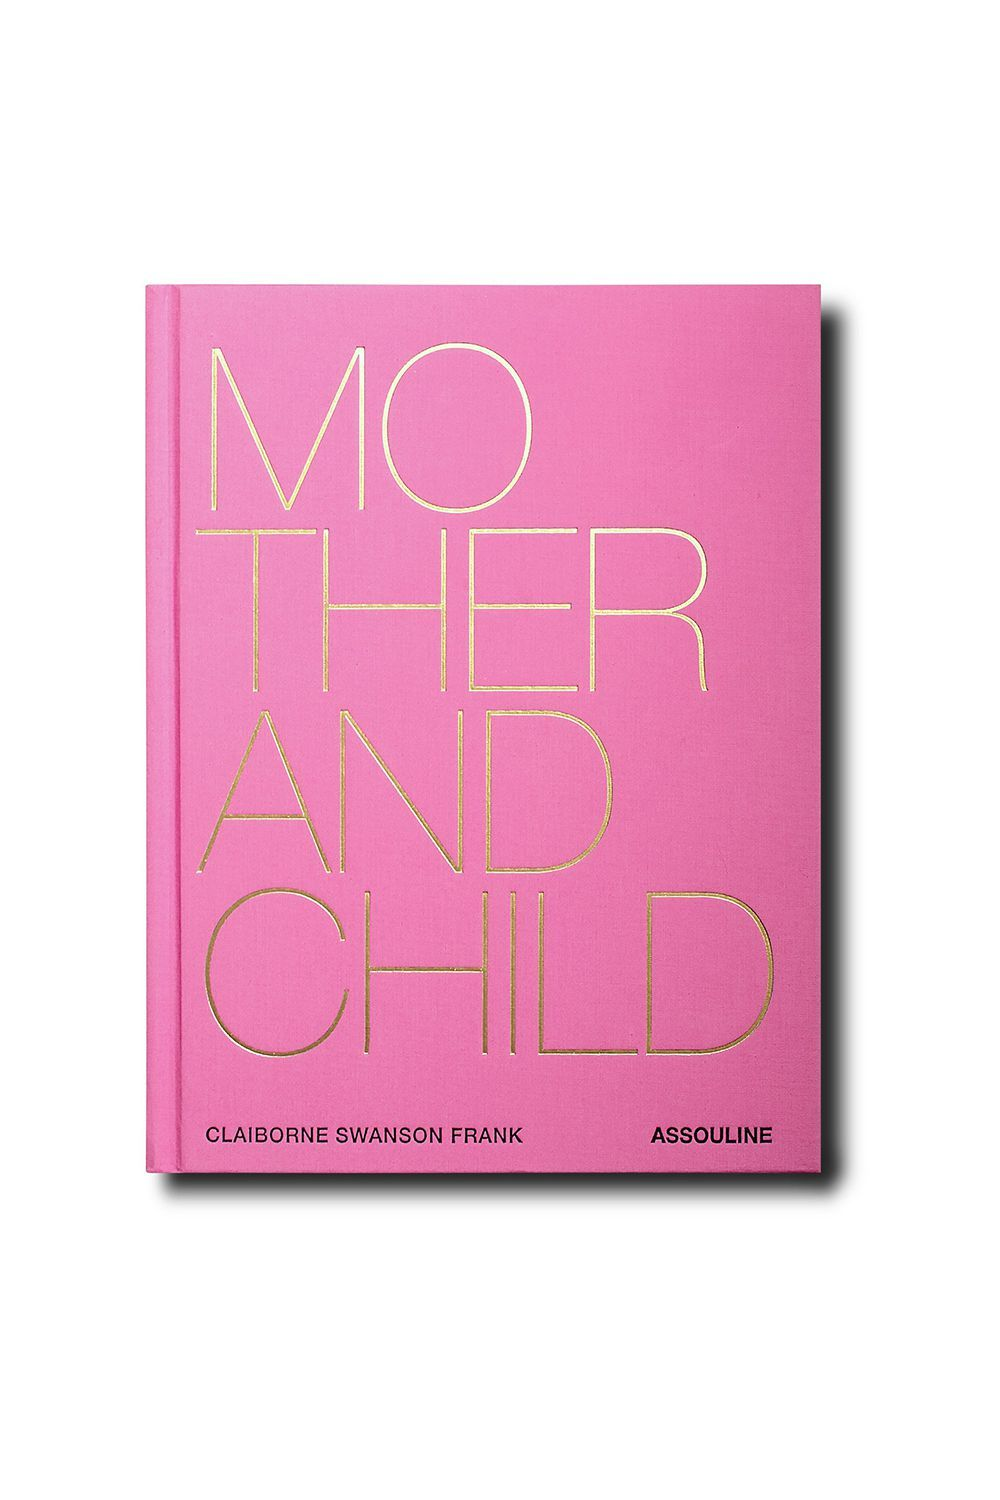 'Mother and Child' Coffee Table Book Assouline $85.00 SHOP IT Claiborne Swanson Frank's 280-page tome explores what motherhood means in the 21st century through famous figures like Delfina Figueras, Carolina Herrera, Lauren Santo Domingo, and Patti Hansen.